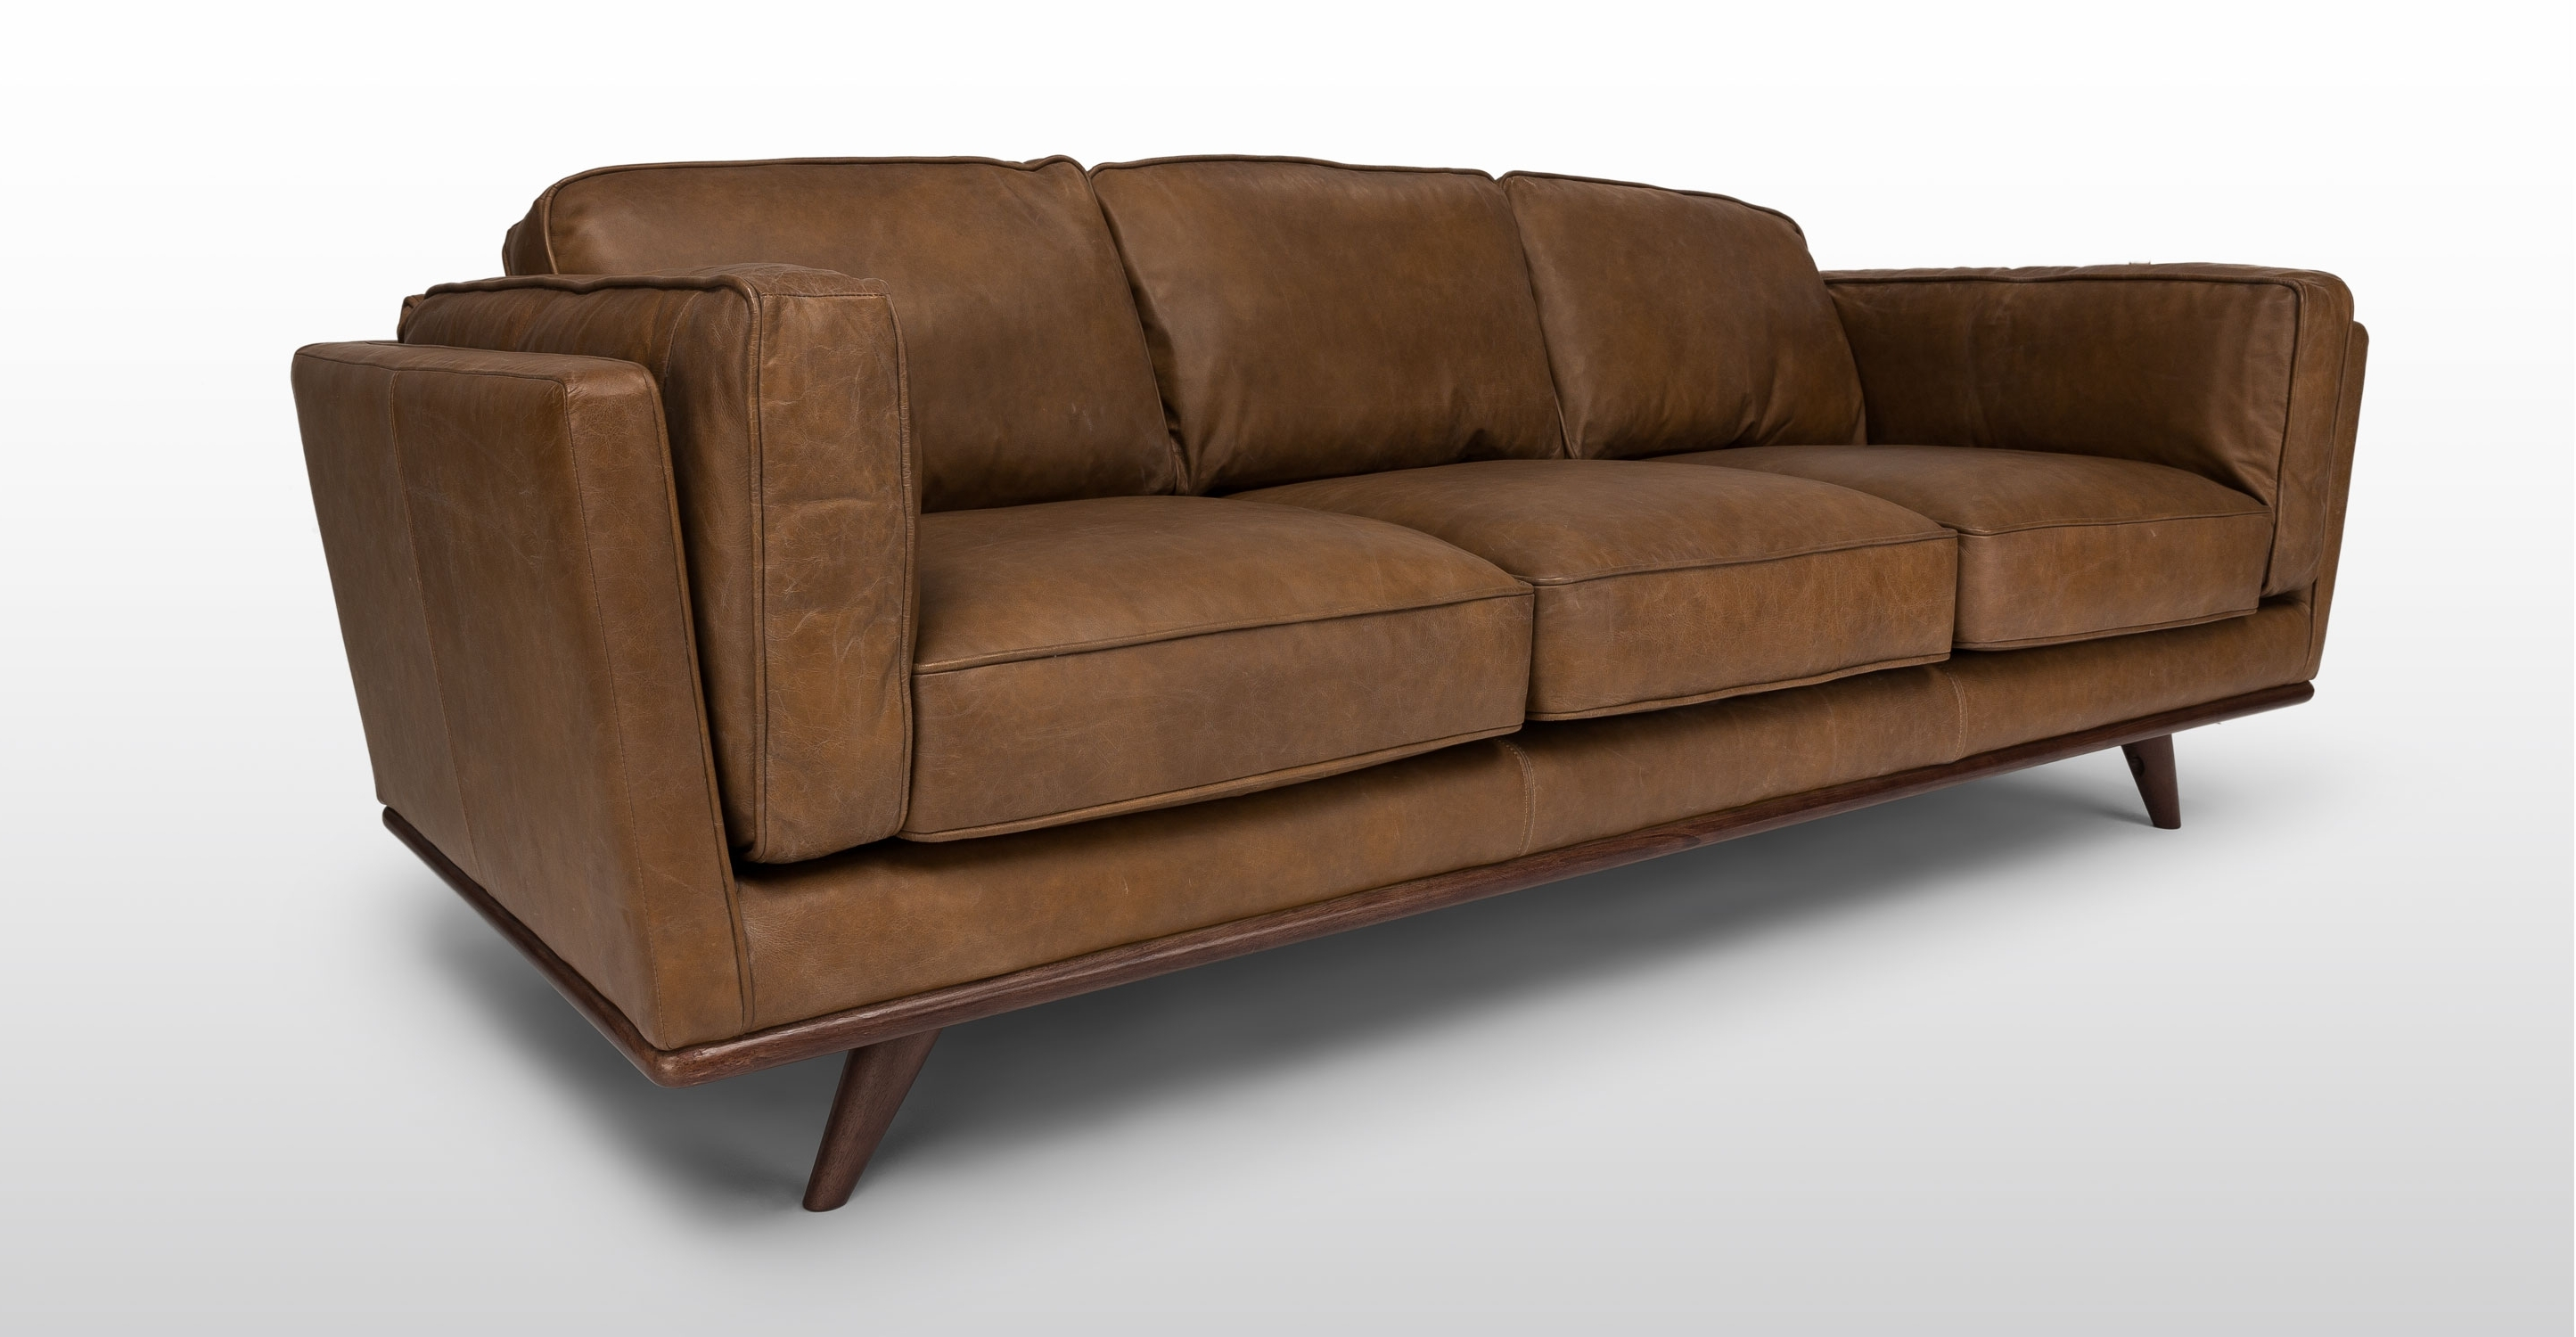 Tan Sofa, Oxfords And Scandinavian Furniture Within Favorite Oxford Sofas (View 19 of 20)